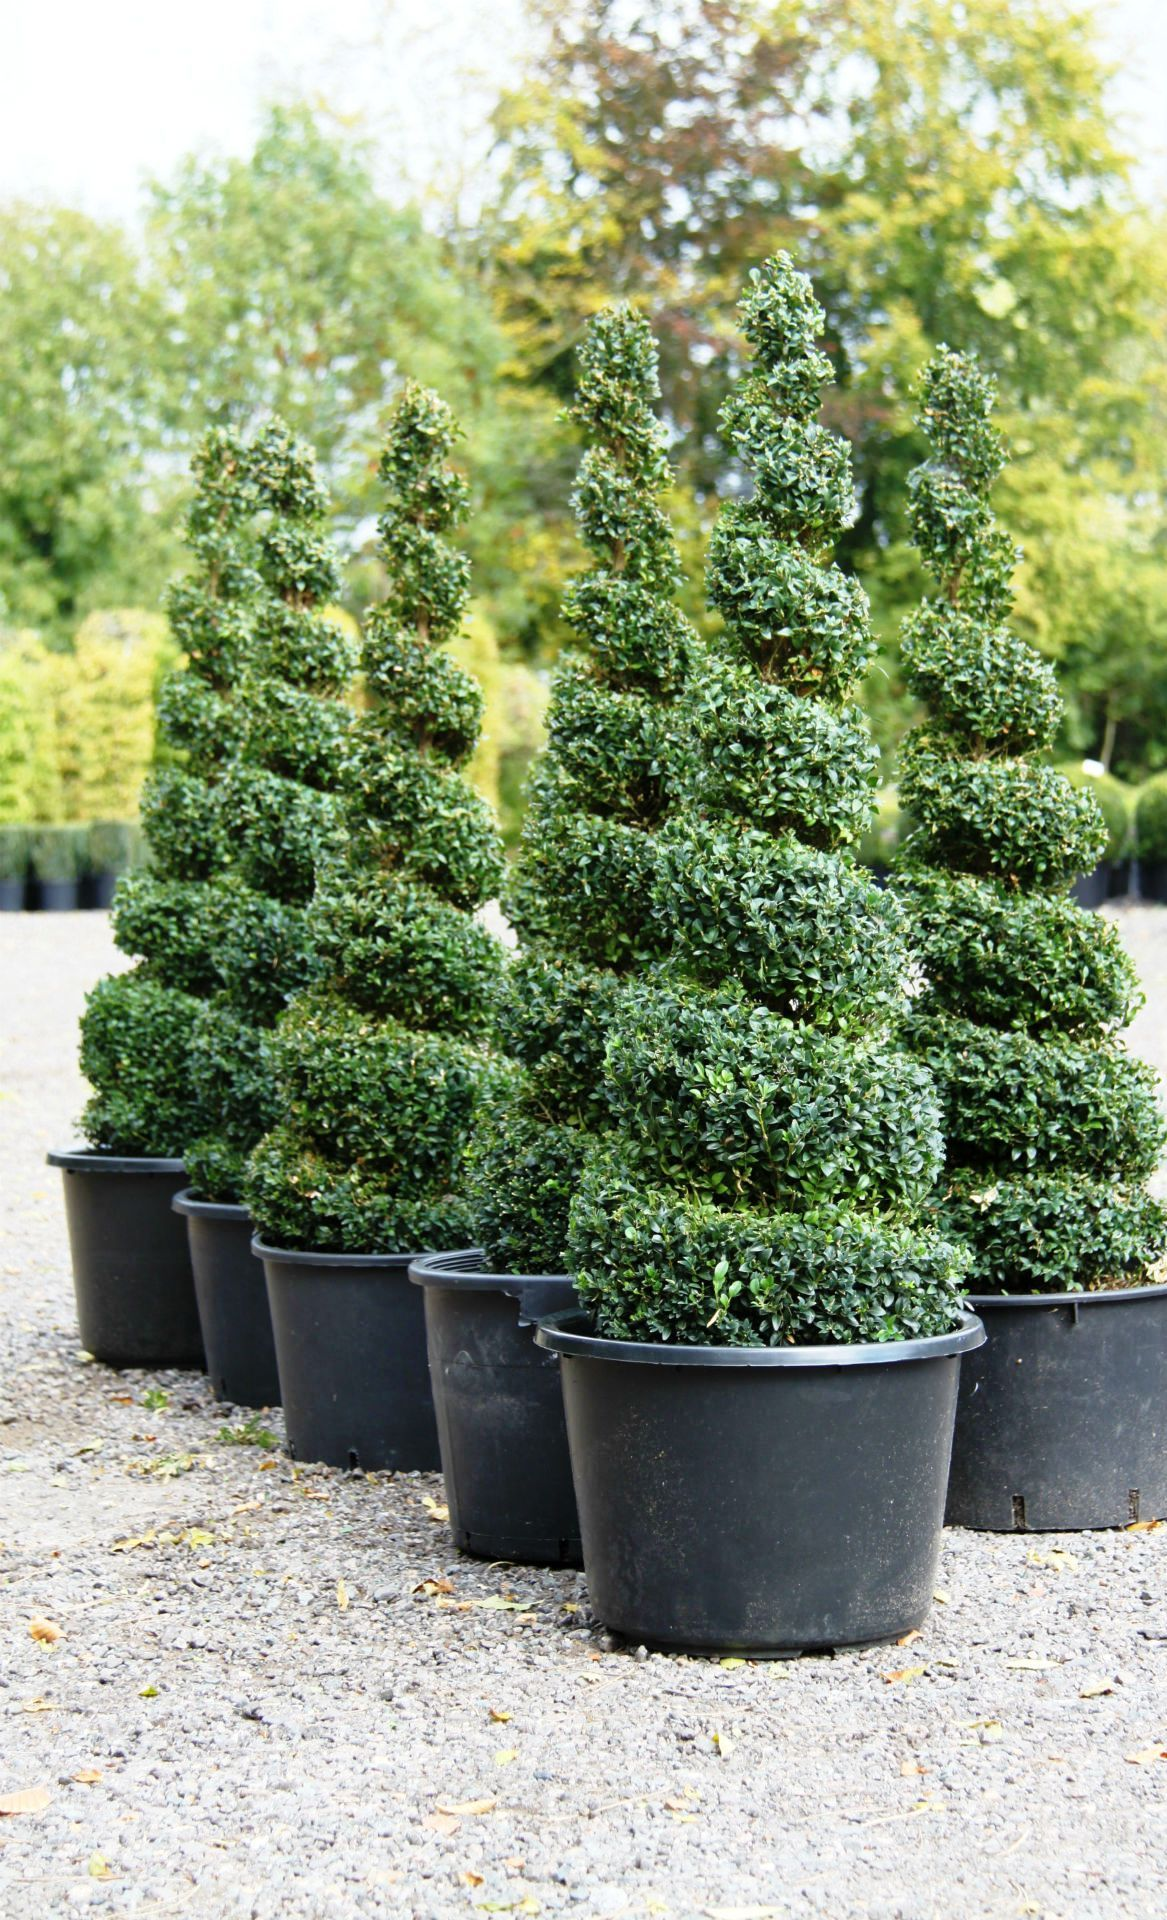 Topiary spirals from crown topiary hertford a topiary for Garden trees shrubs